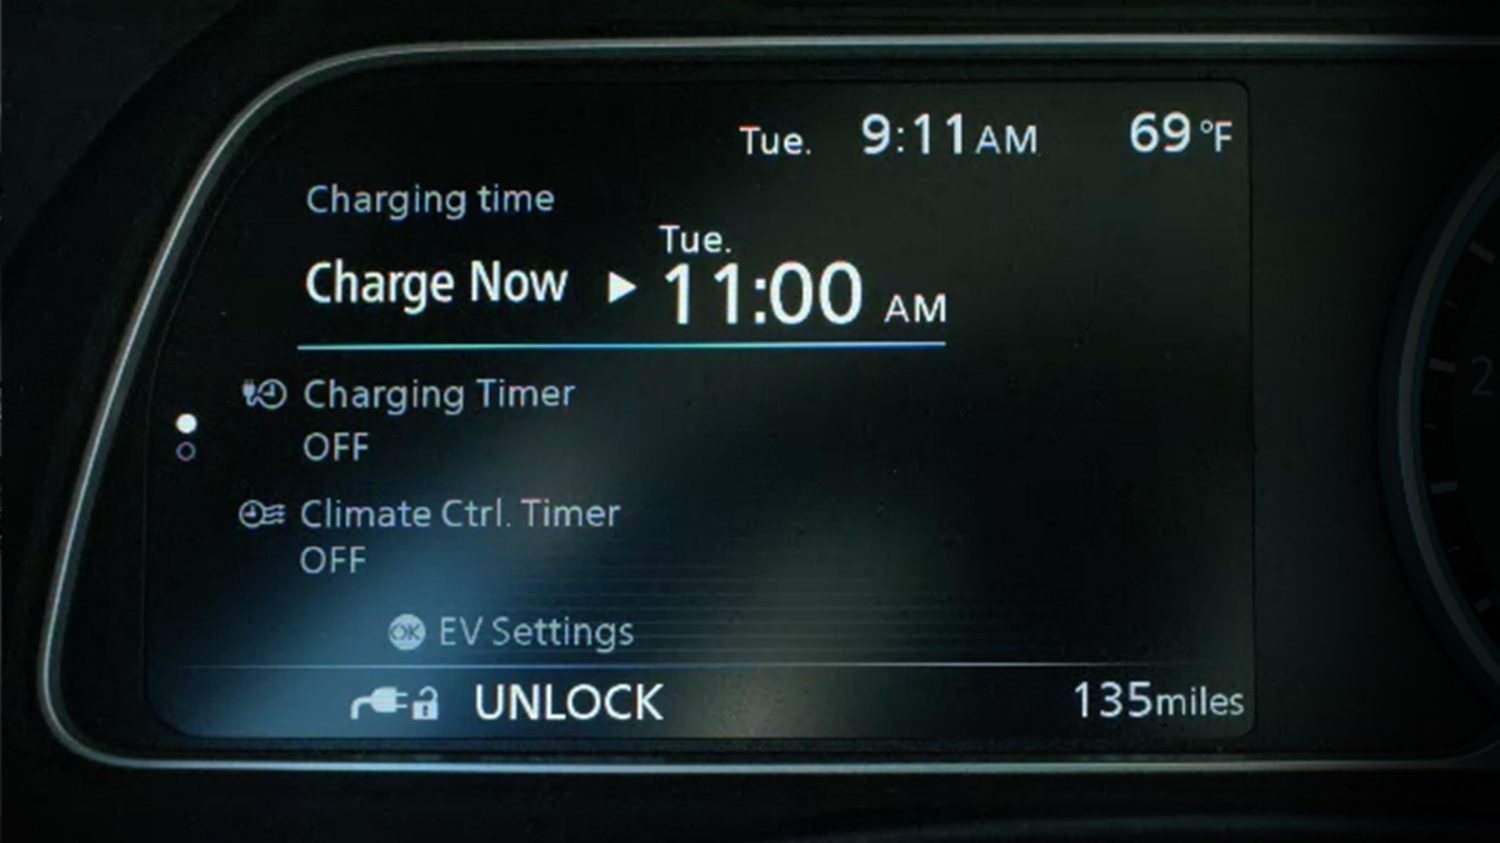 New Nissan LEAF charging timer screen